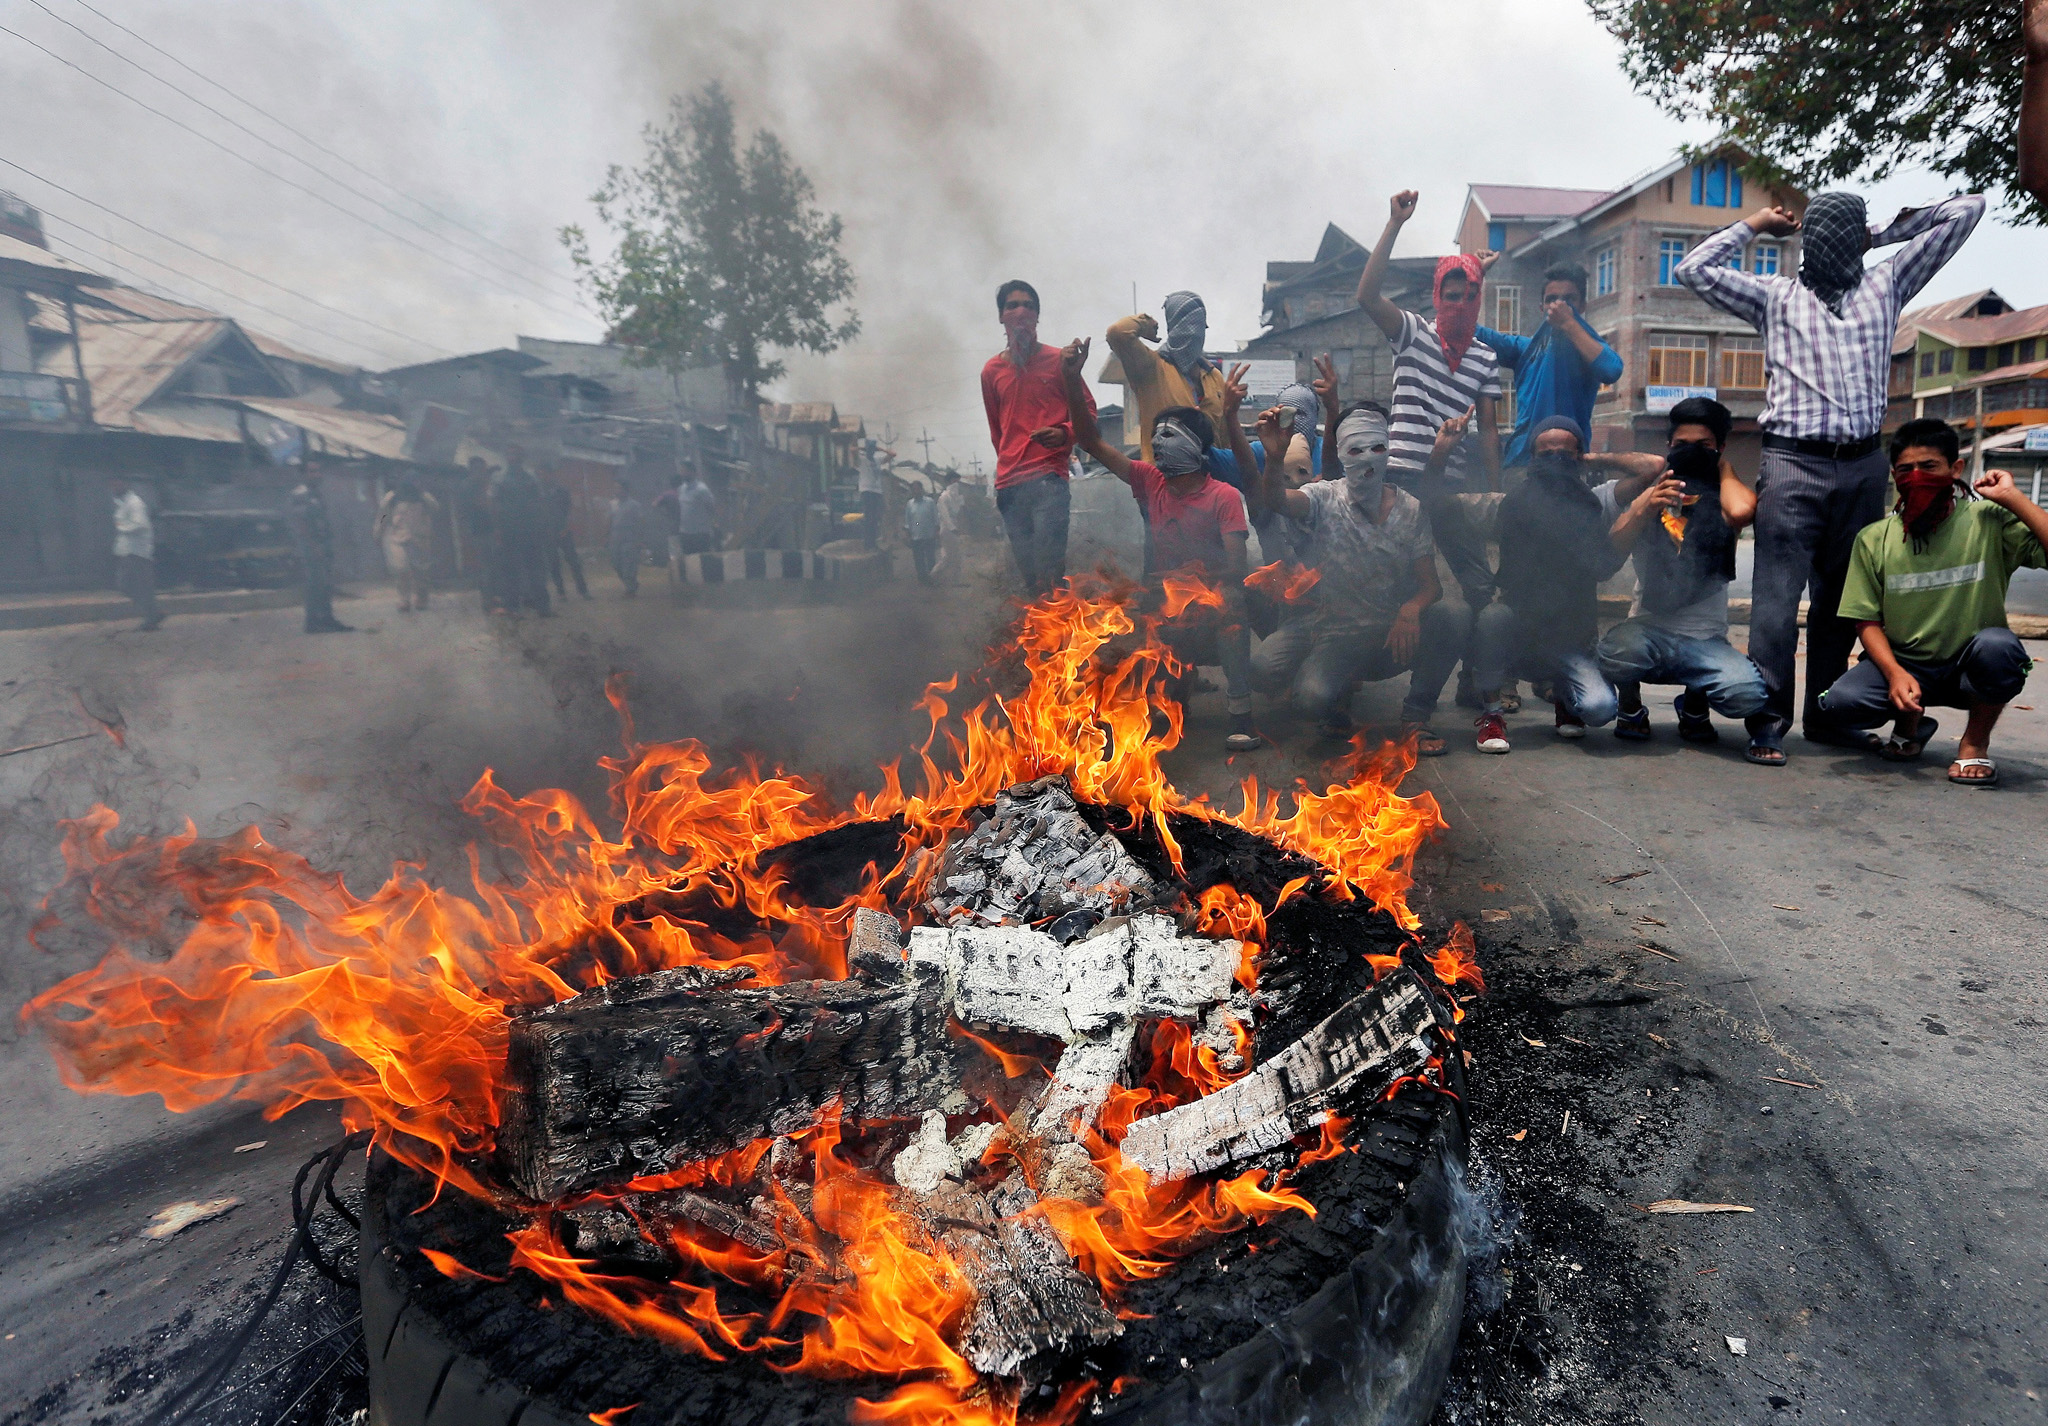 Masked demonstrators shout slogans next to a burning tyre during a protest in Srinagar against the recent killings in Kashmir